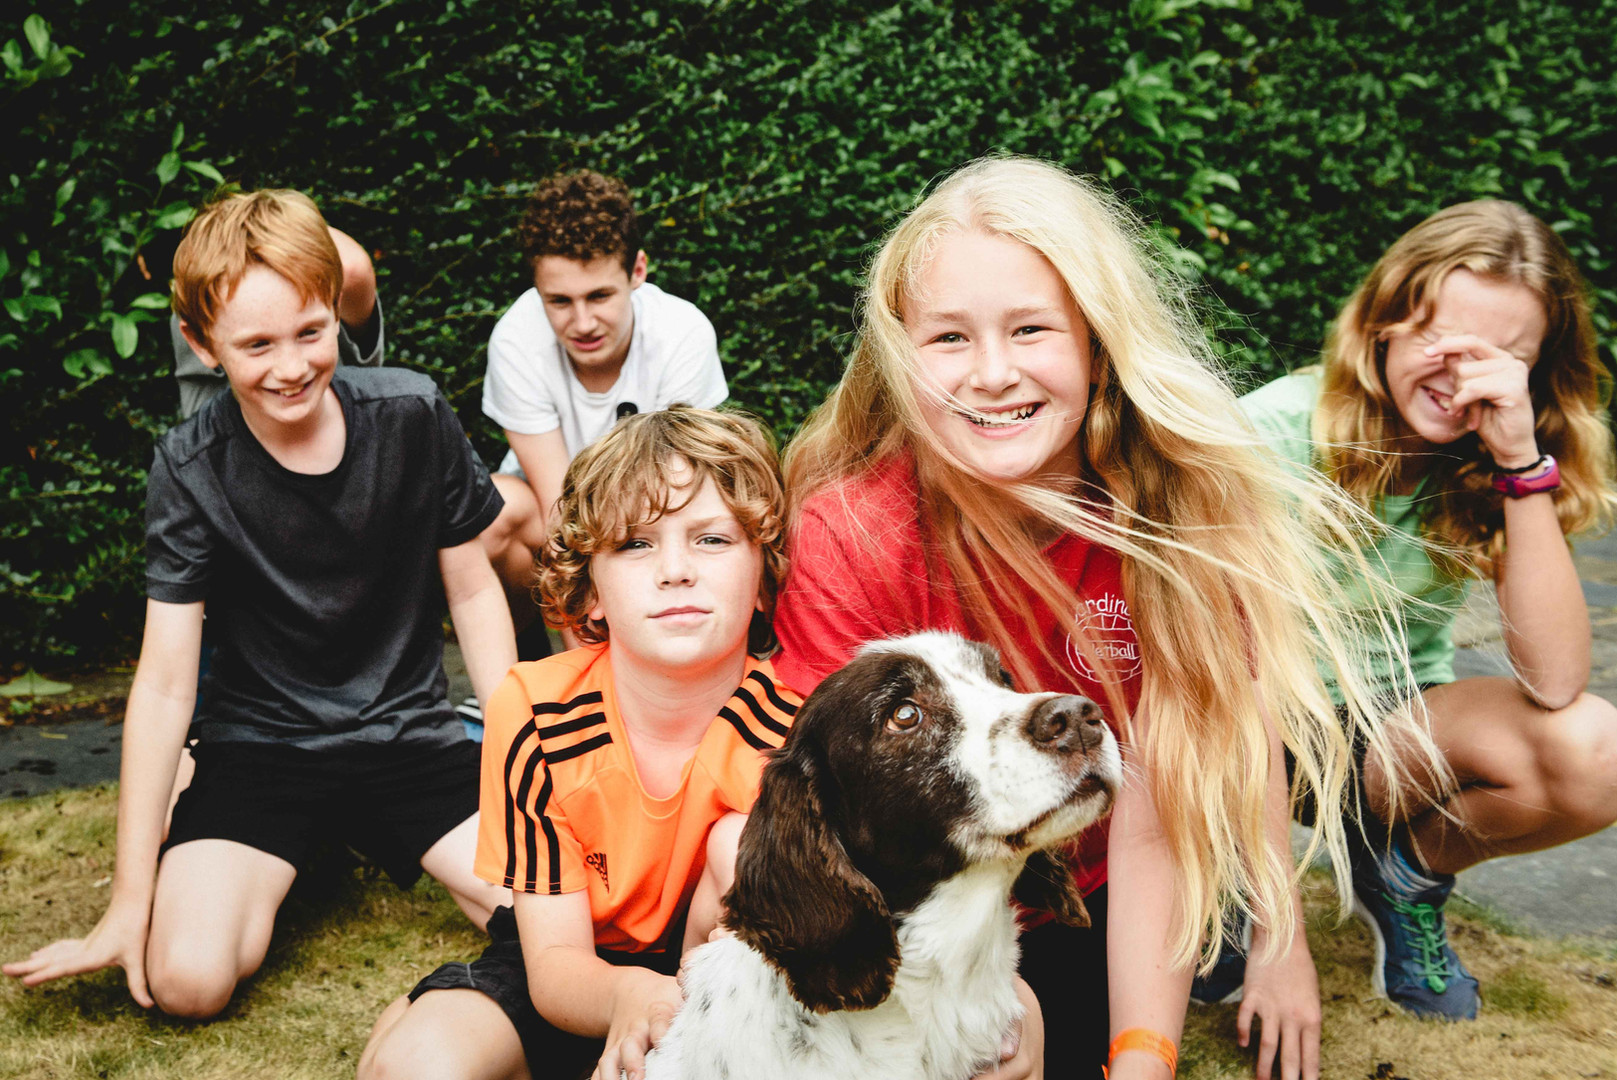 Children smiling together with family dog